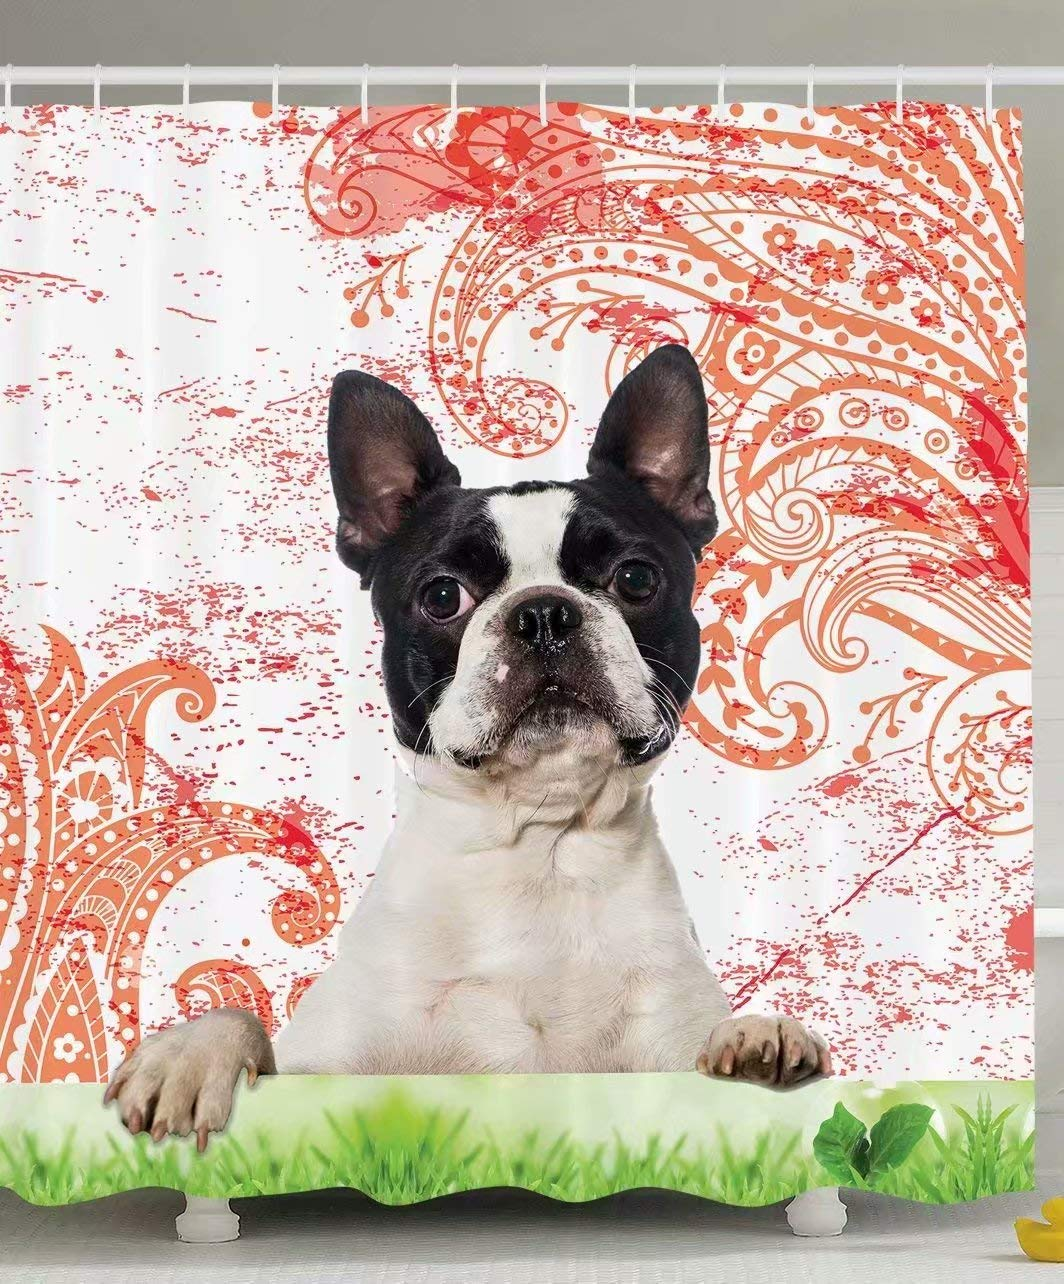 KANATSIU Purebred Cute Boston Terrier Artwork Shower Curtain,with 12 plactic hooks,100% Made of Polyester,Mildew Resistant & Machine Washable,Width x Height is 72X72